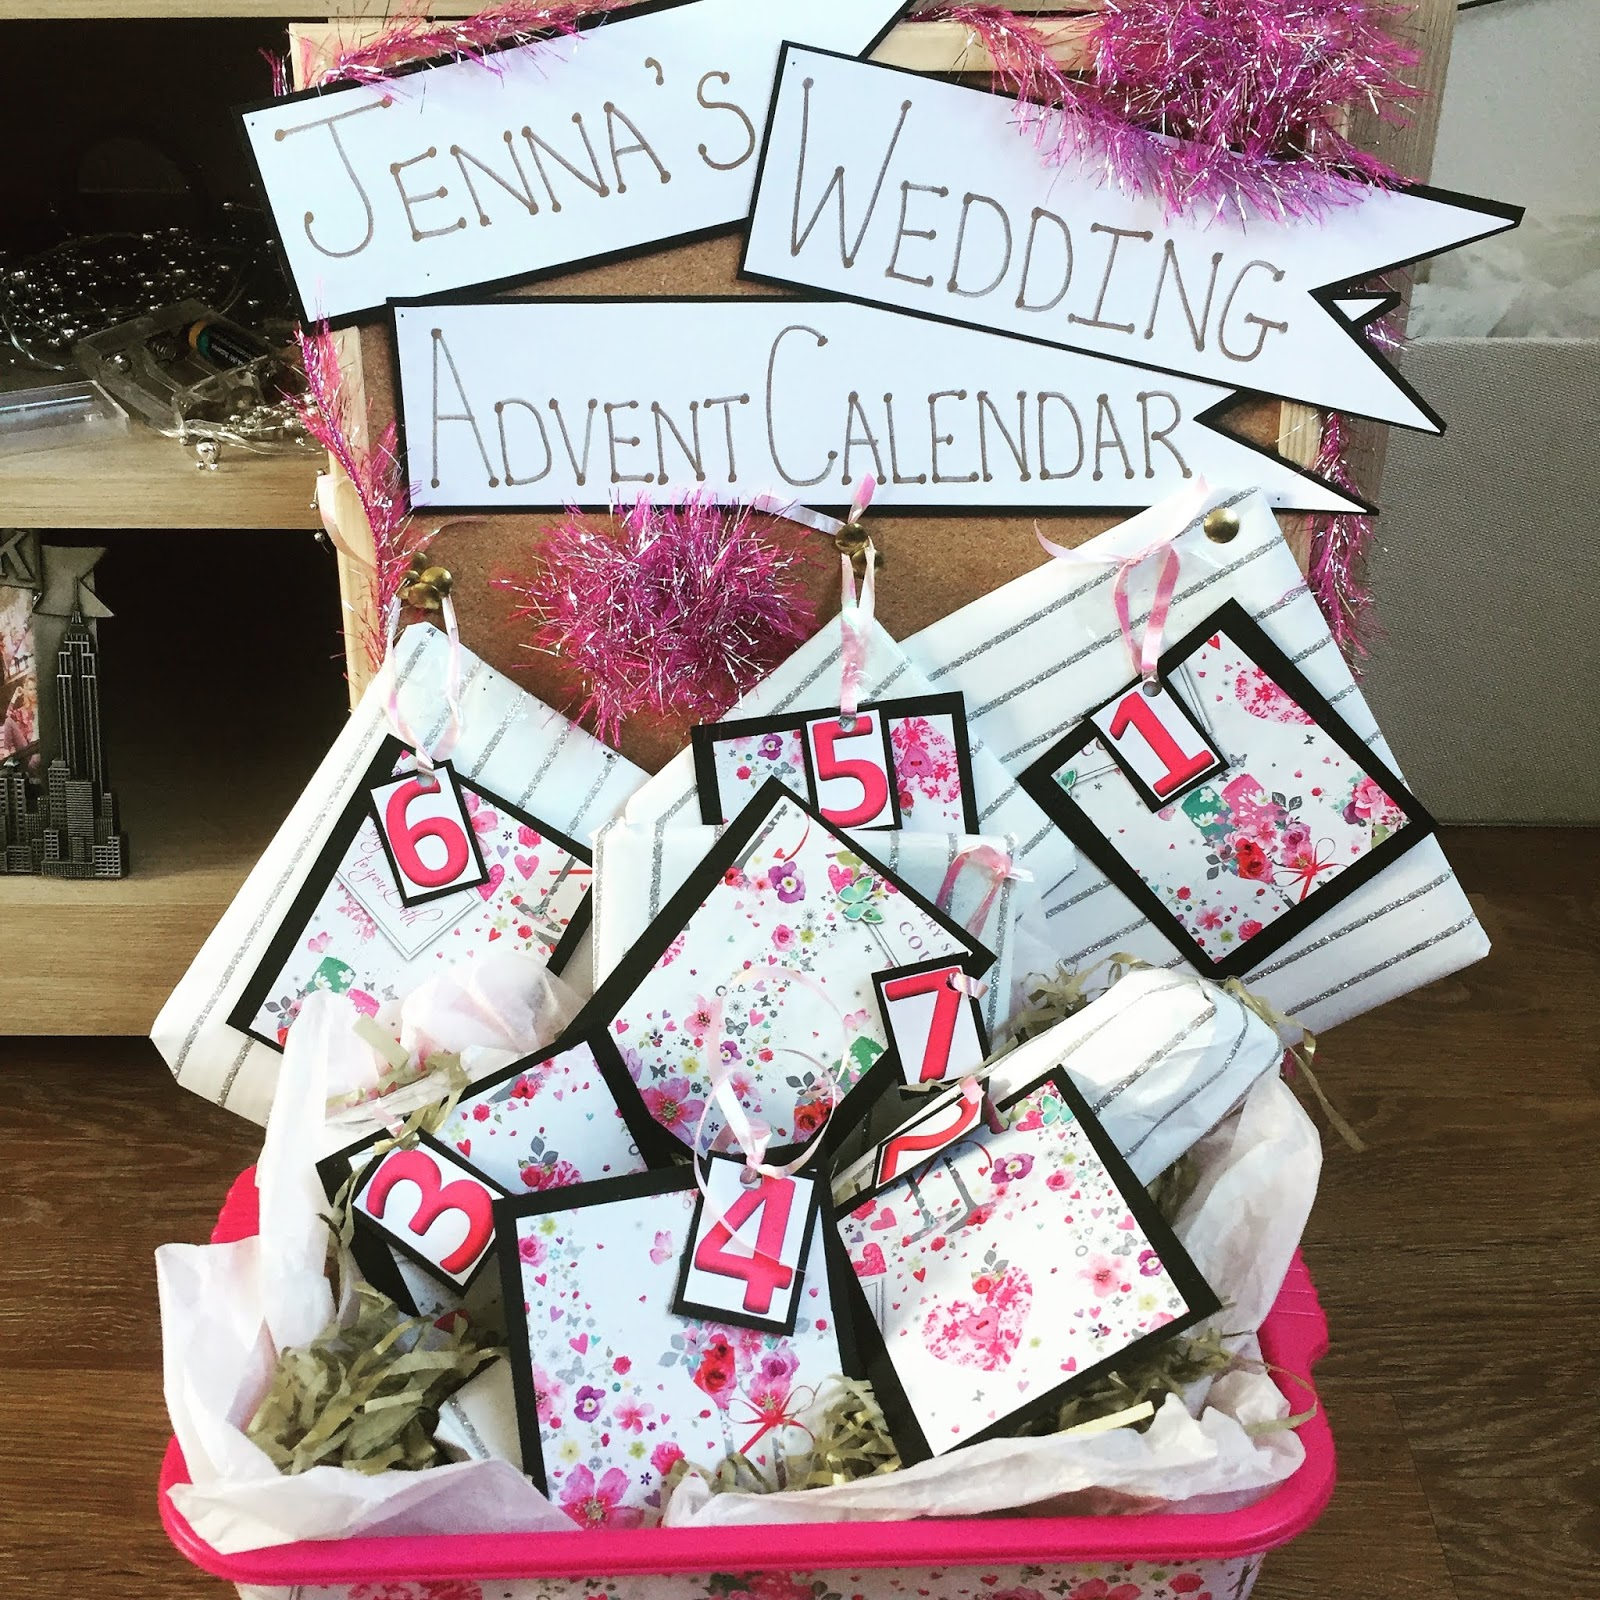 Wedding Advent Calendar Whats Inside Jenna Suth